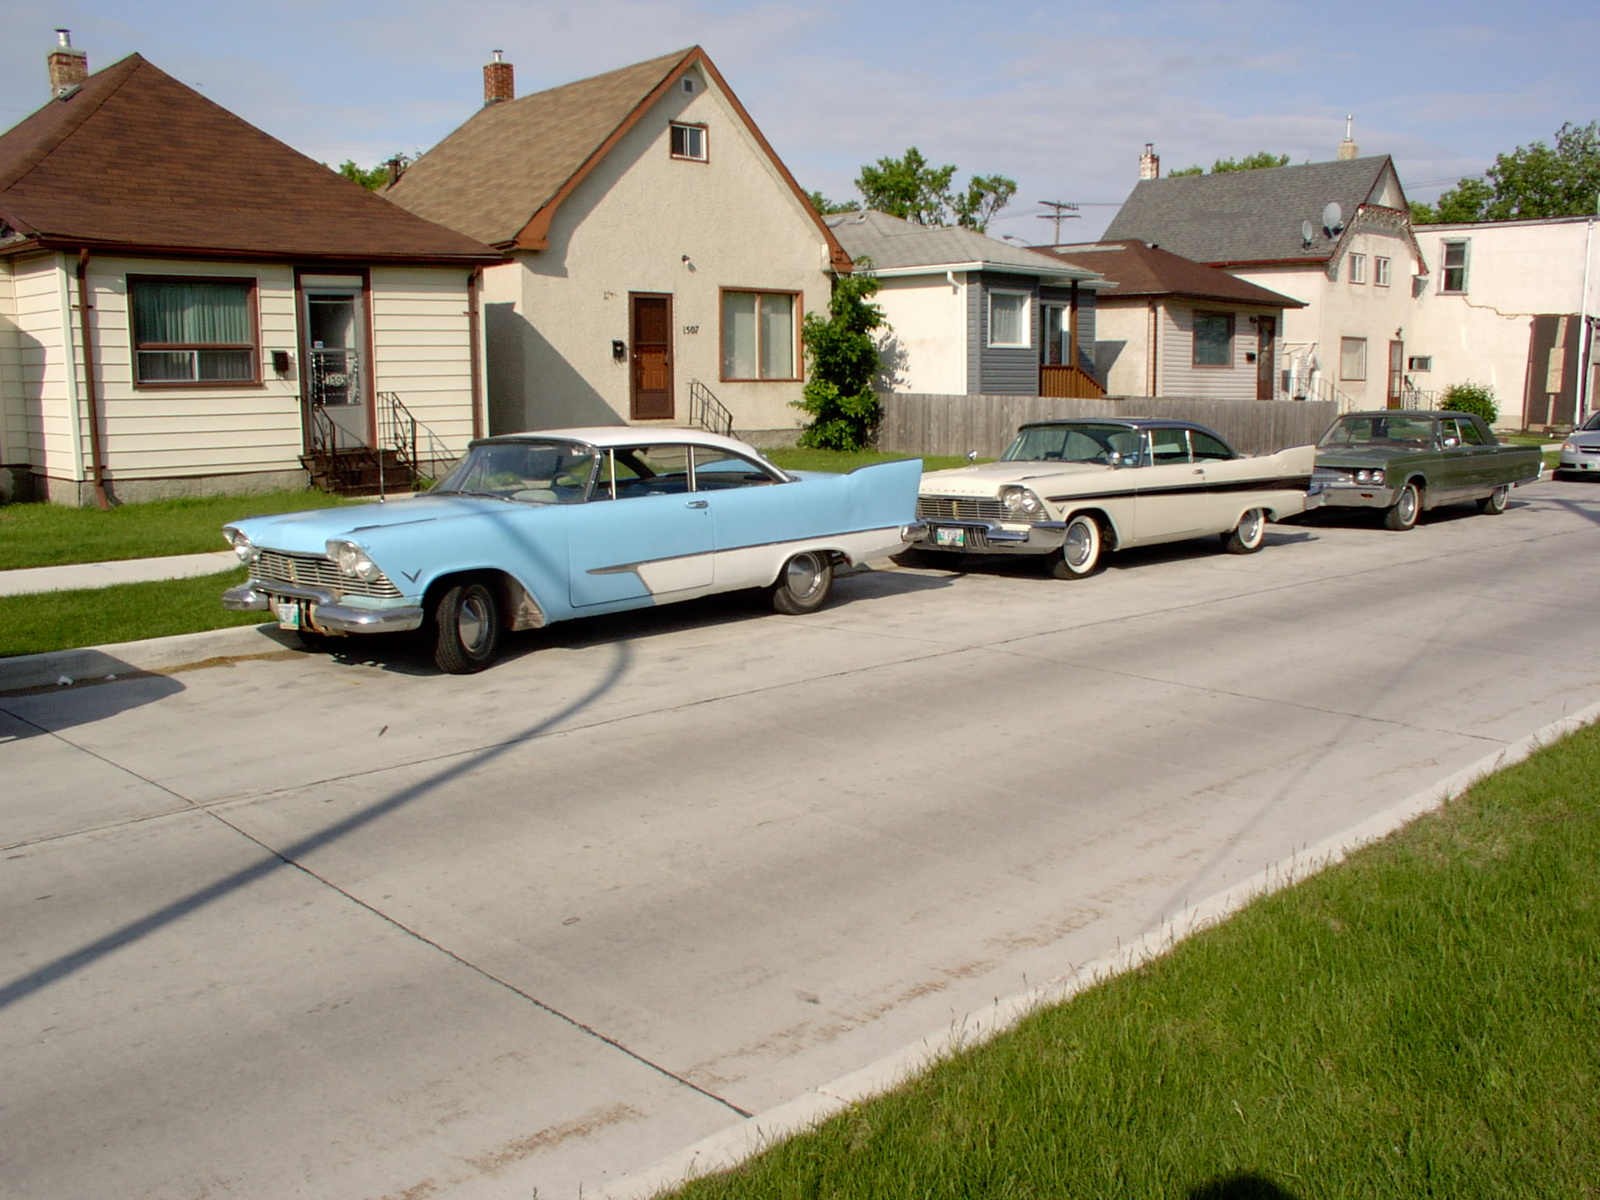 1957 Plymouth Belvedere, 57 Belvedere & Savoy on front street, exterior